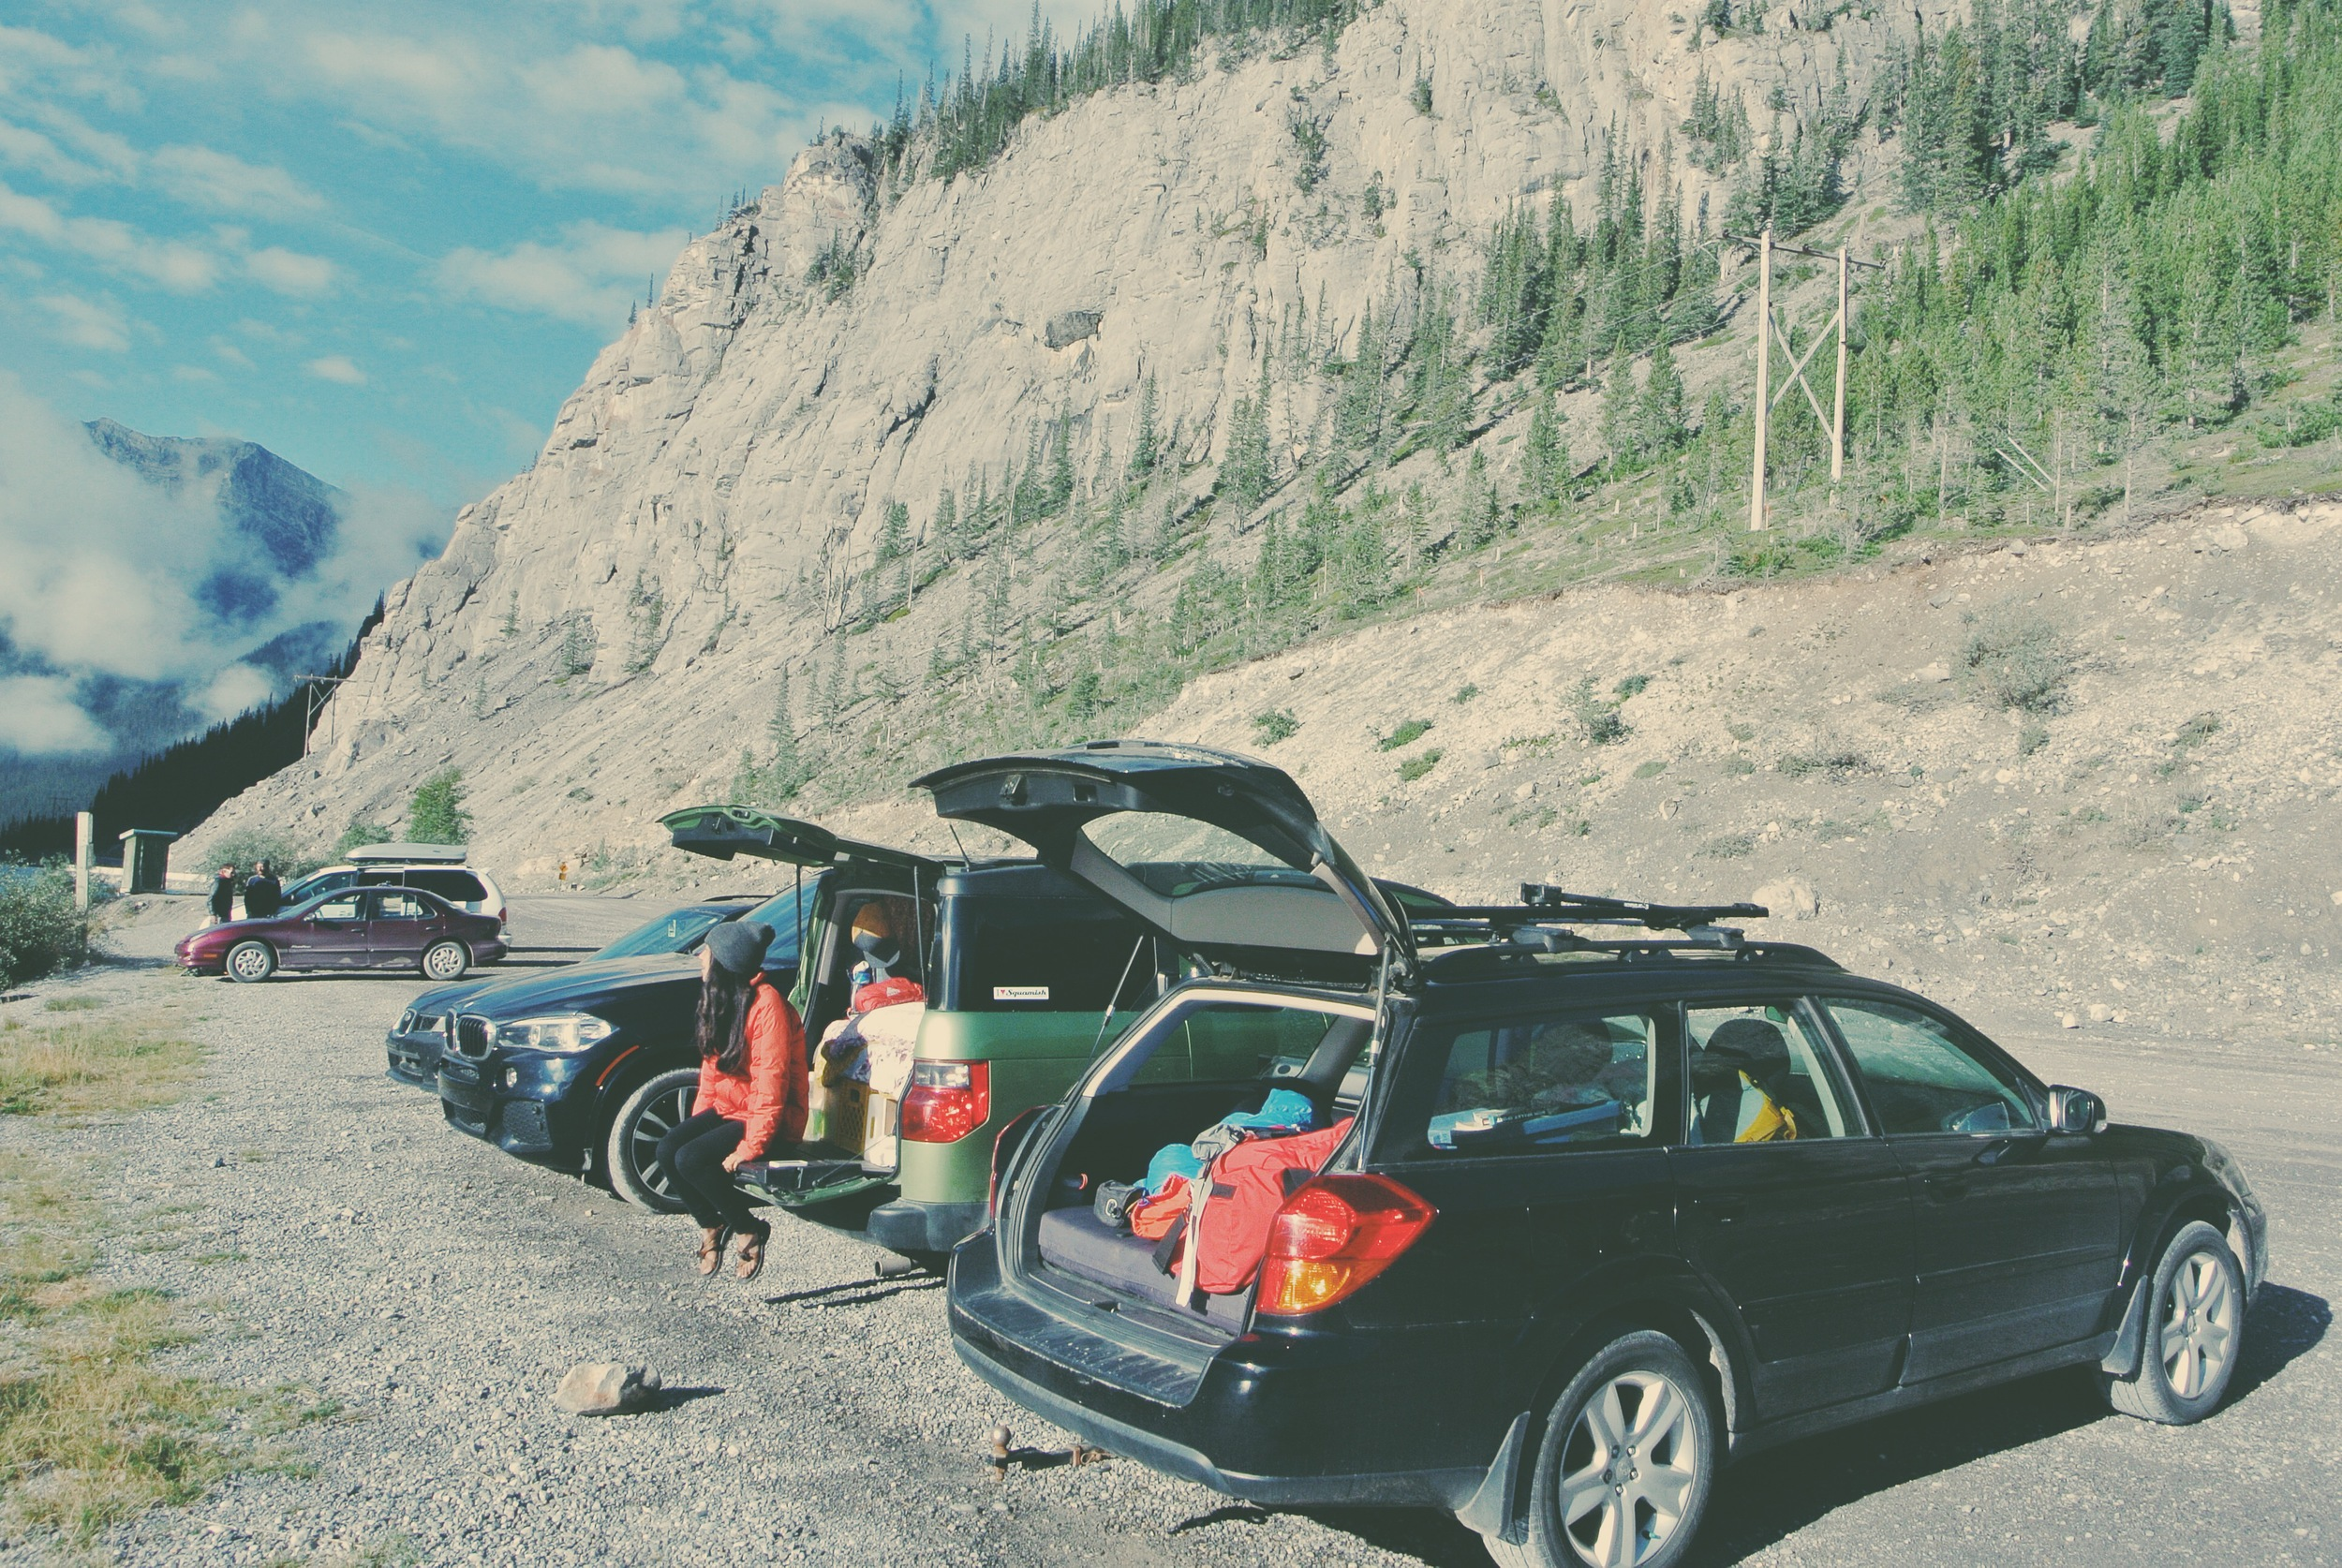 Our home for the 4 days in Canmore